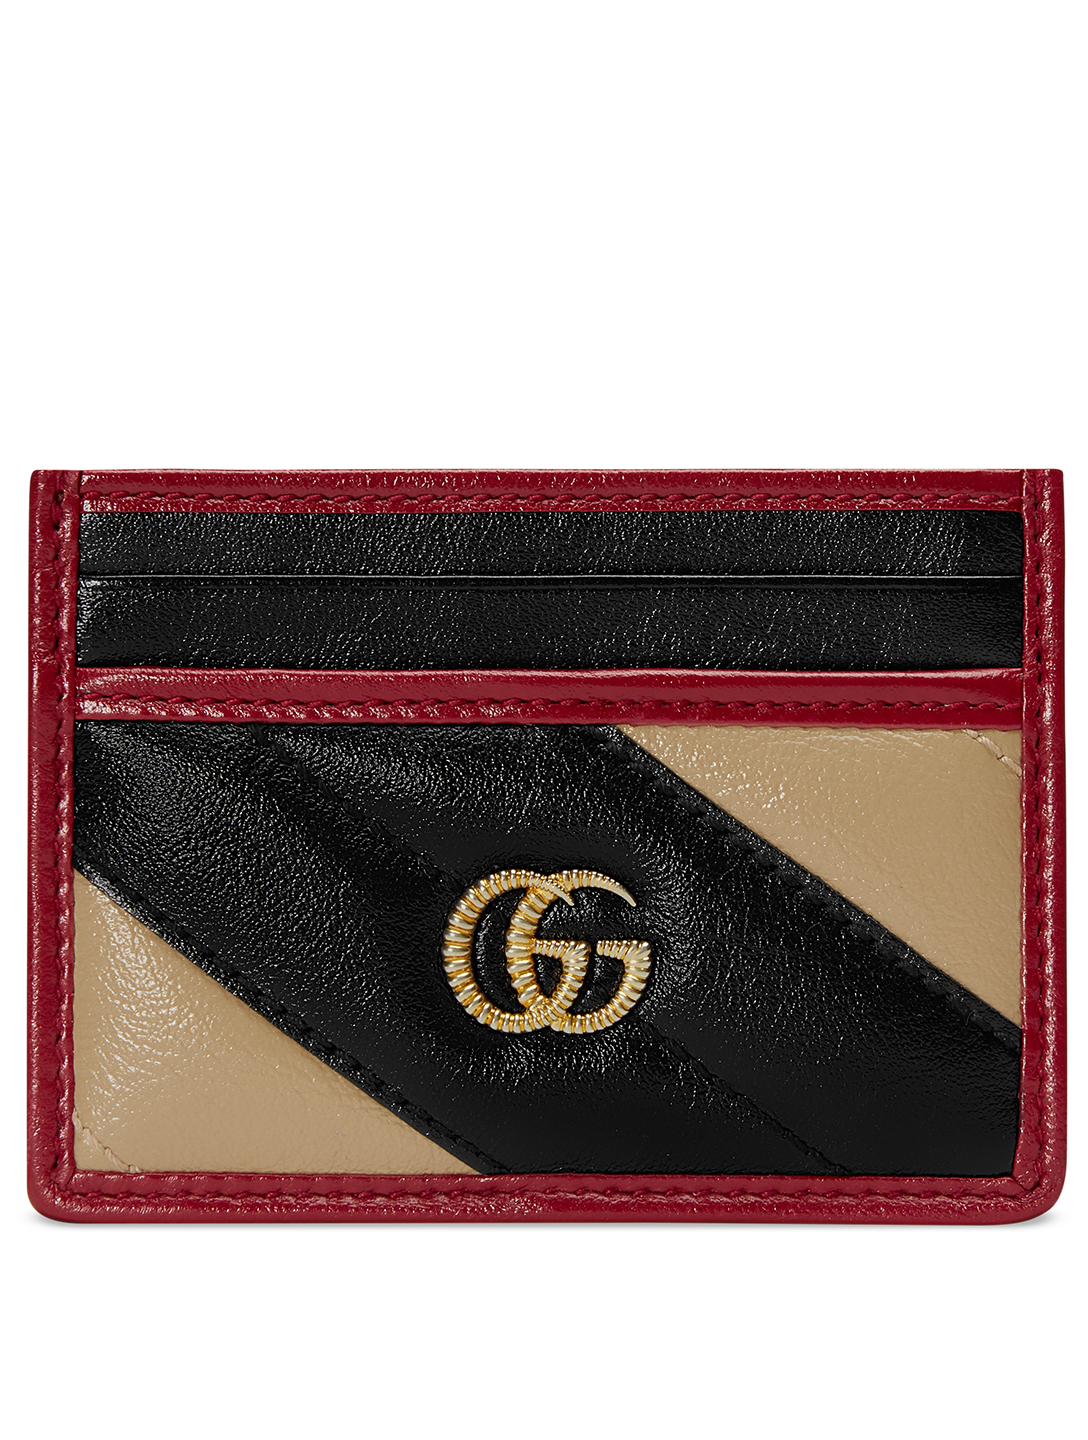 GUCCI Torchon GG Marmont Matelassé Leather Card Holder Women's Multi